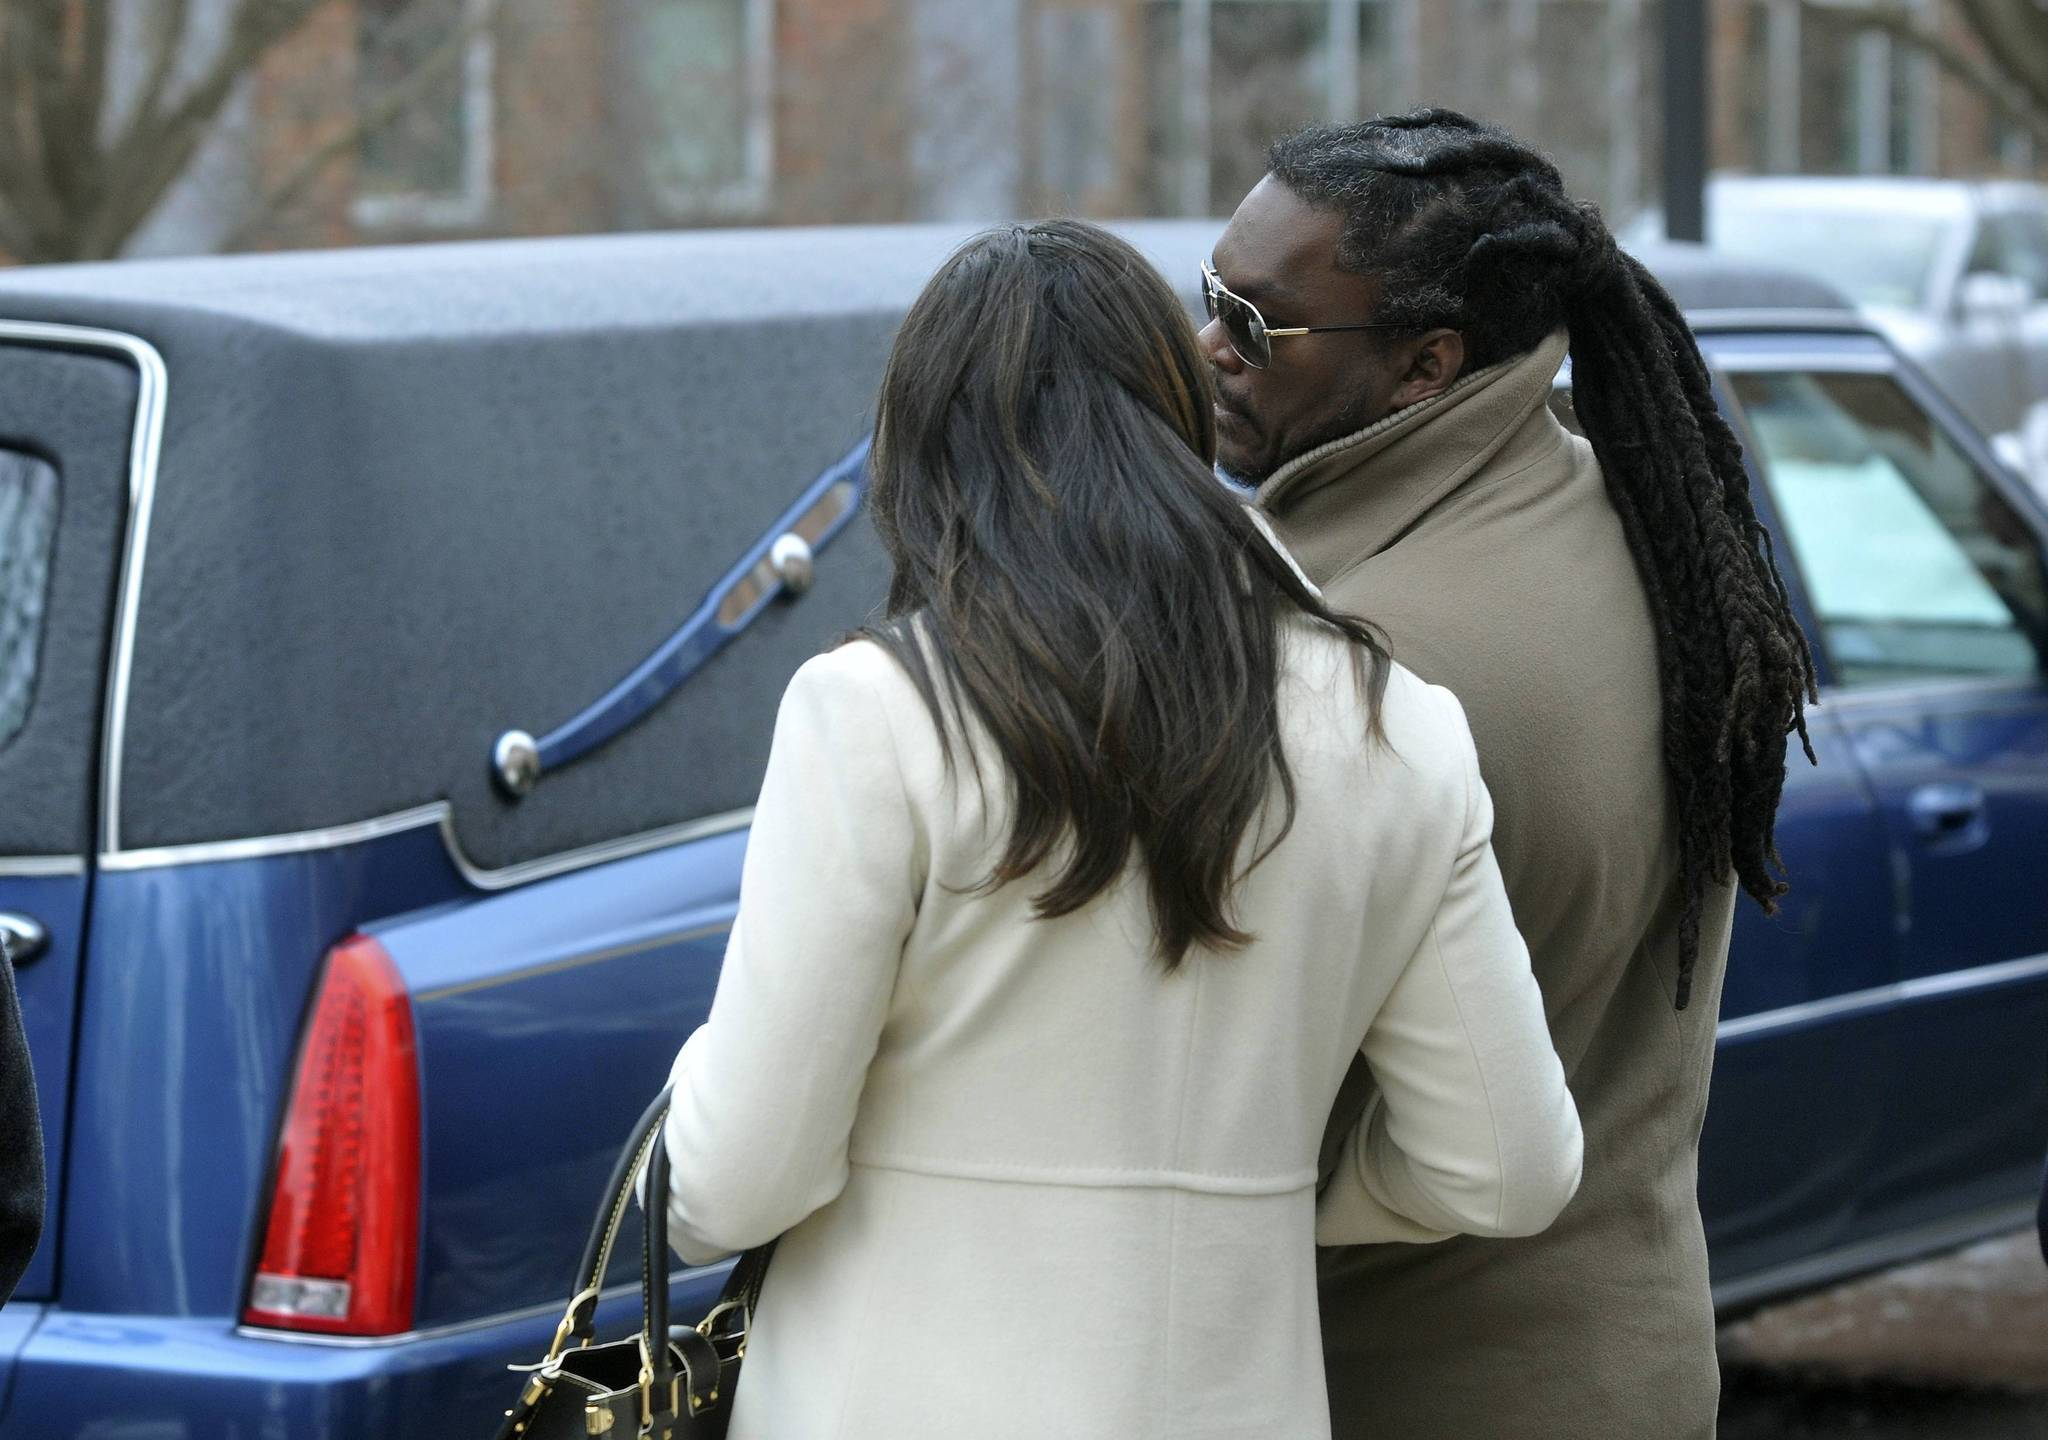 Former Penn State and Washington Redskins NFL linebacker LaVarr Arrington (R) passes by the hearse of former head football coach Joe Paterno. Mourners of Paterno are adjusting to life without the man who was the face of the university for half a century while coming to terms with a legacy tainted by his inactive role in a child sexual abuse scandal.